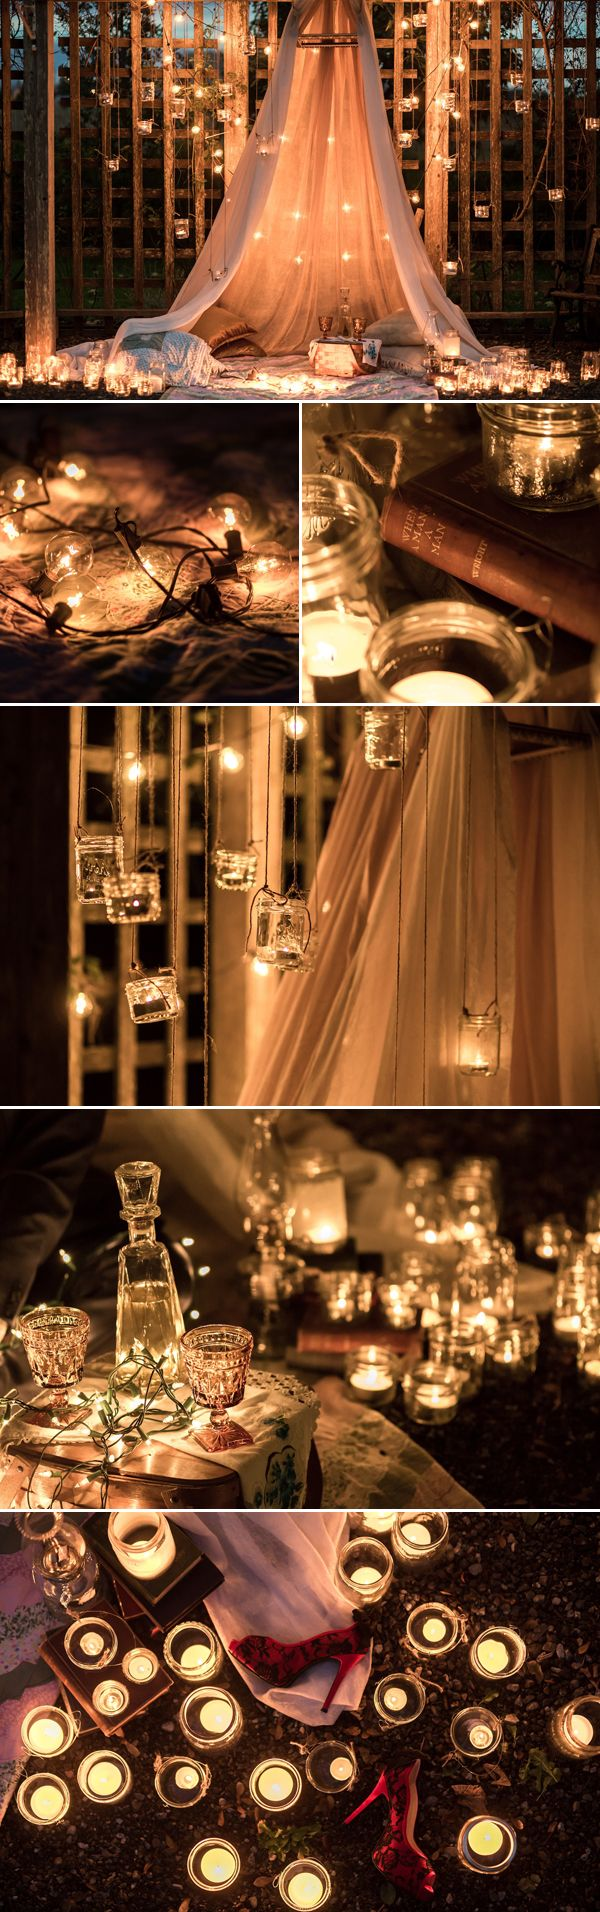 Romantic bedroom at night - Magical Romantic Candle Light Engagement Session From Kunioo